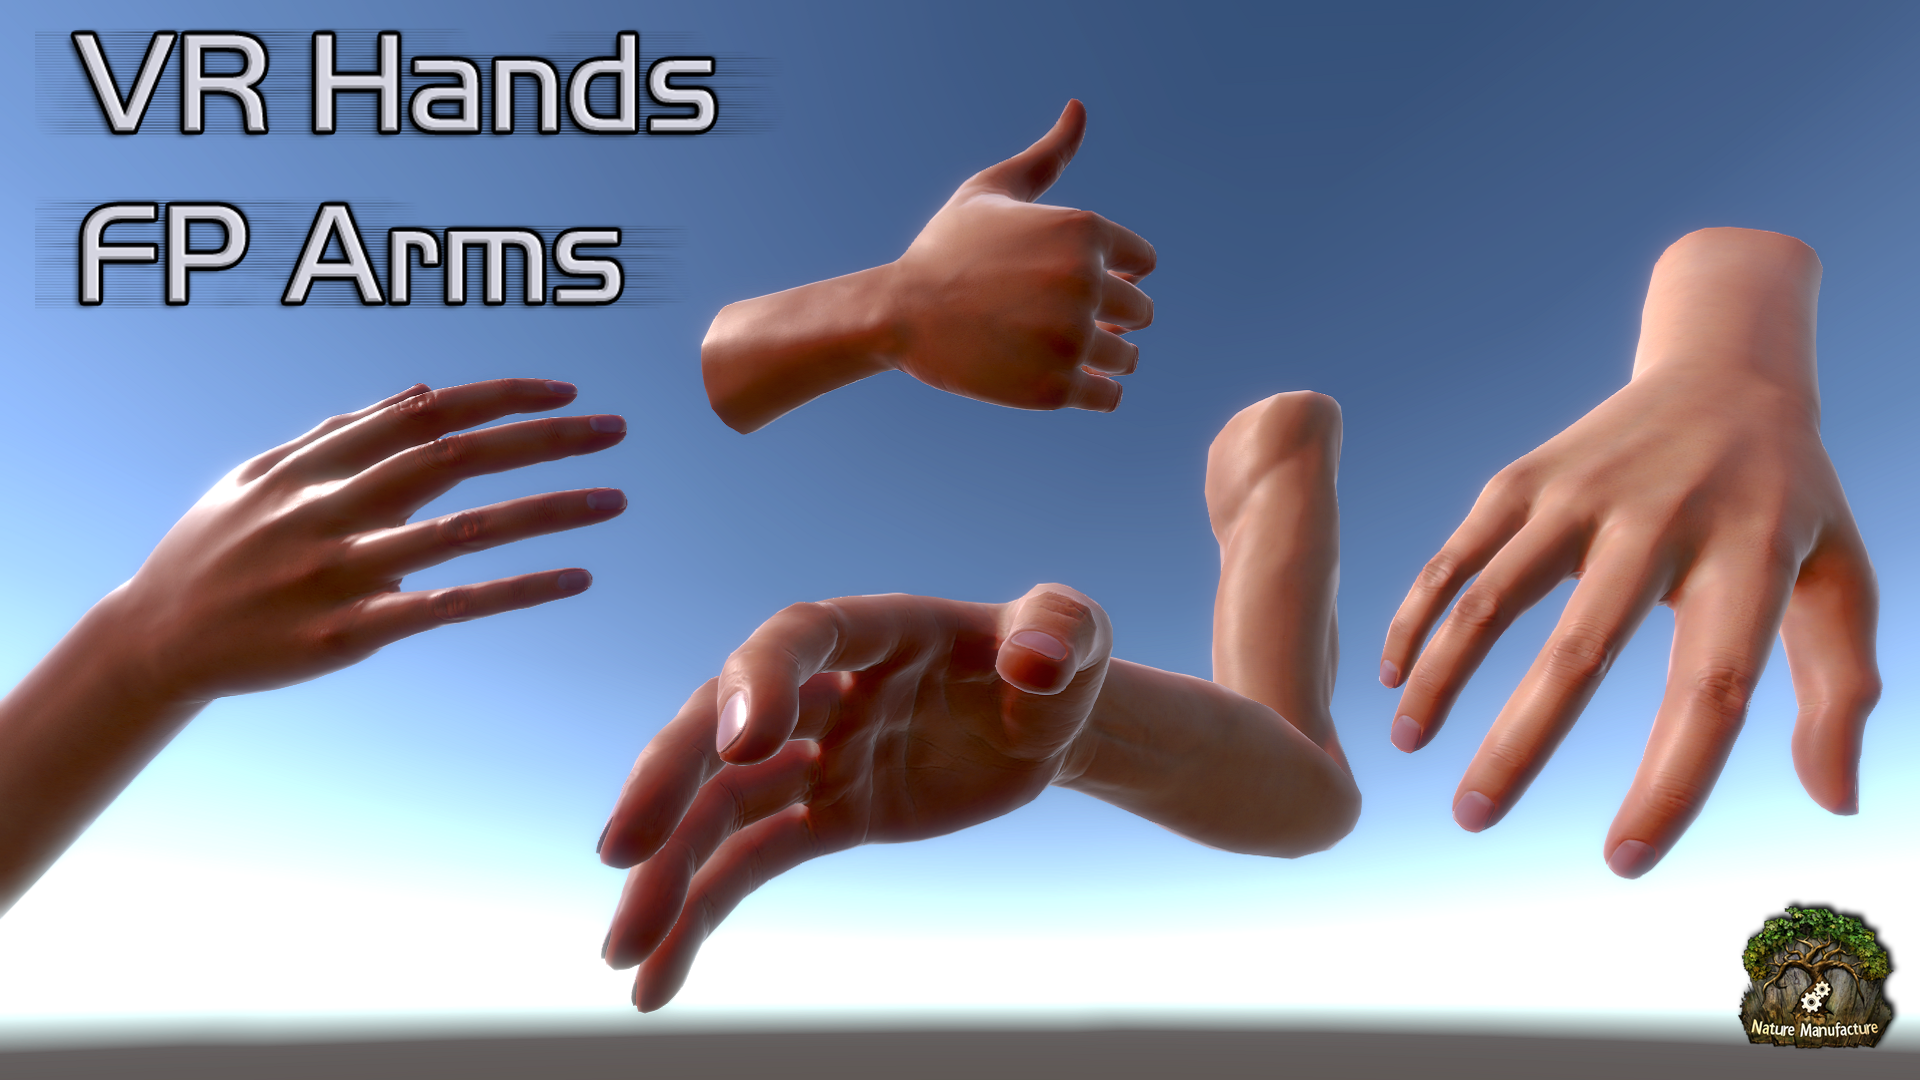 VR Hands FP Arms